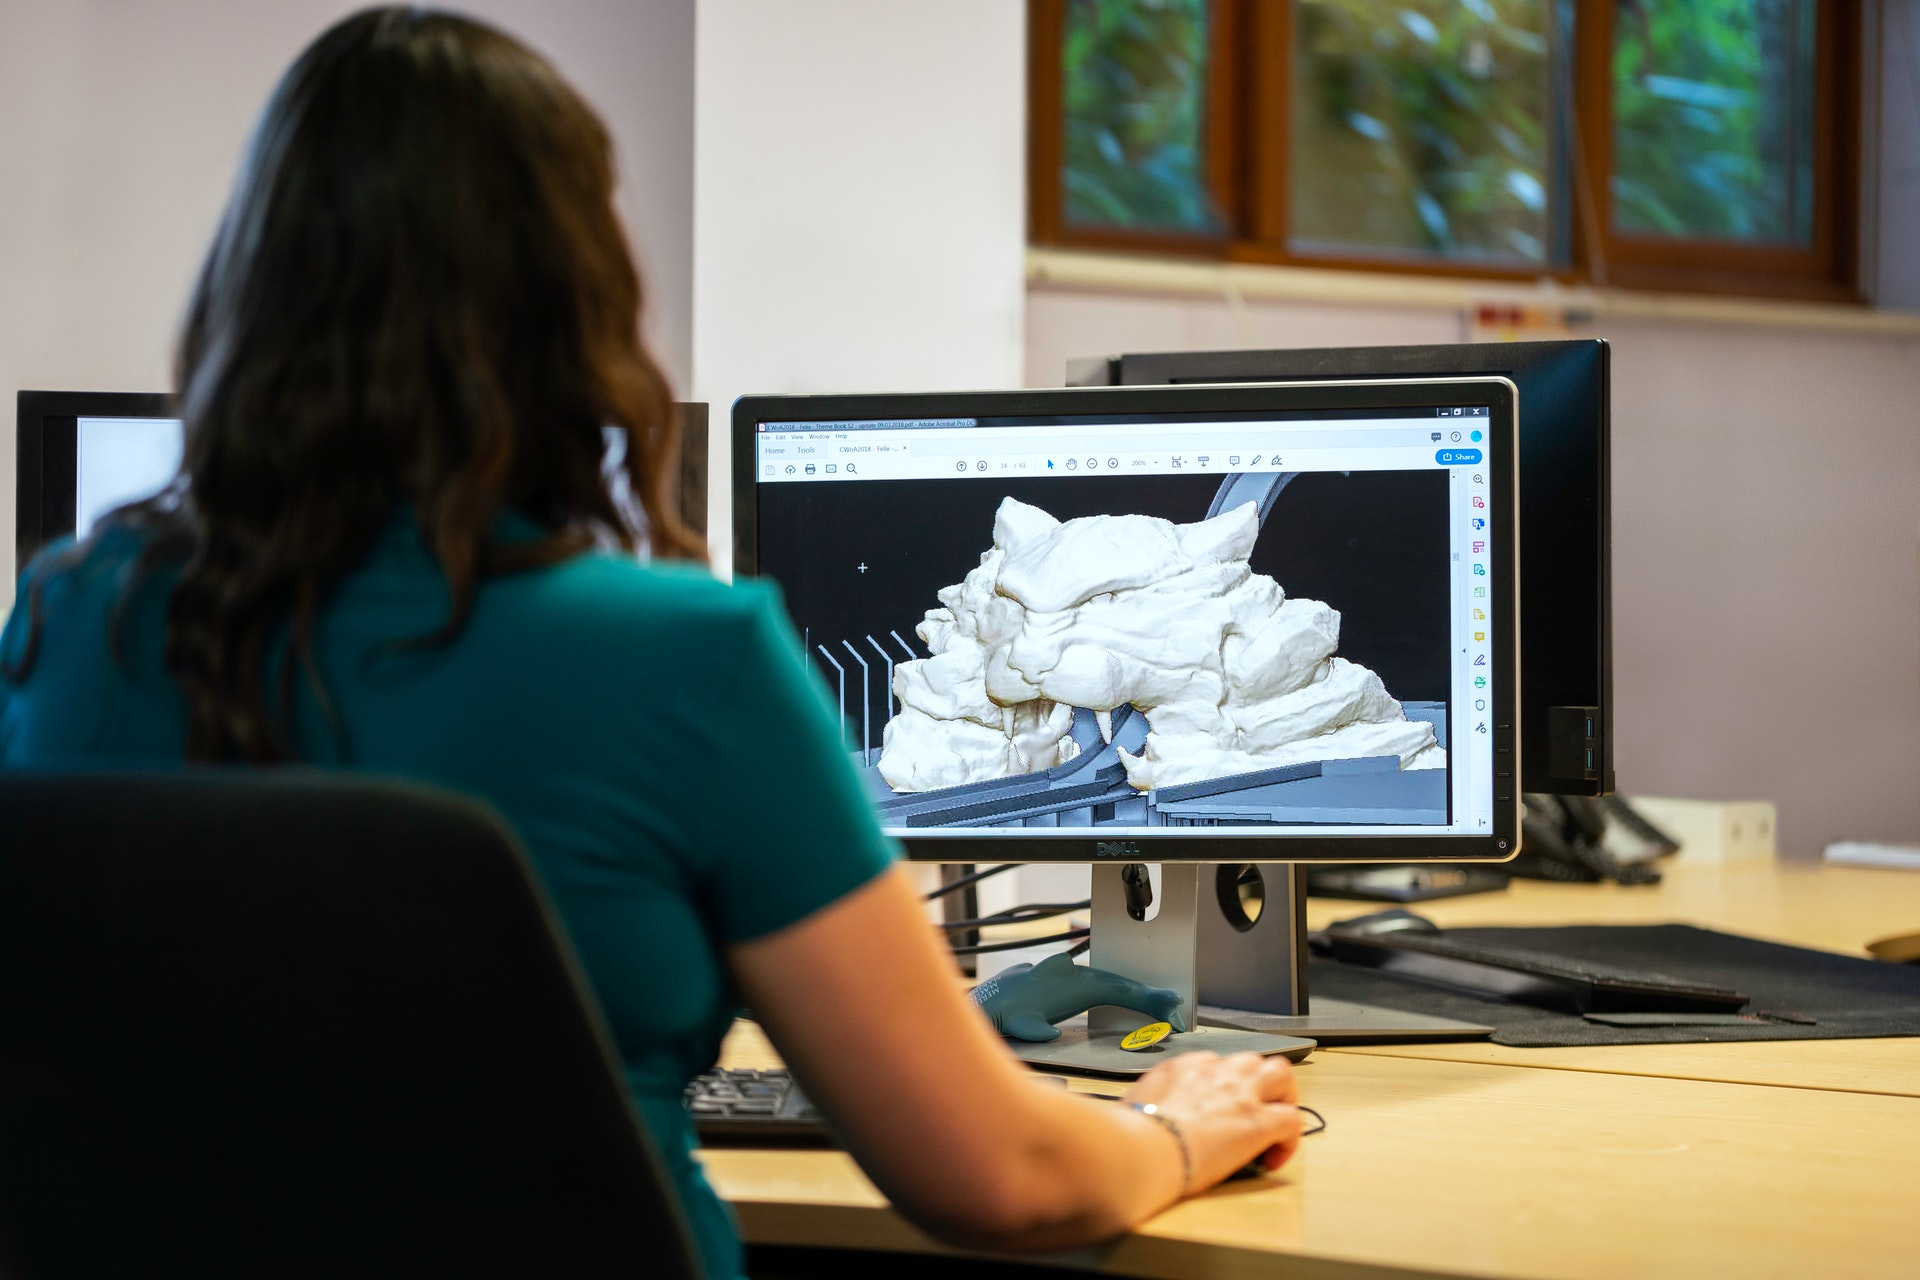 More and more companies and careers are asking for 3D skills